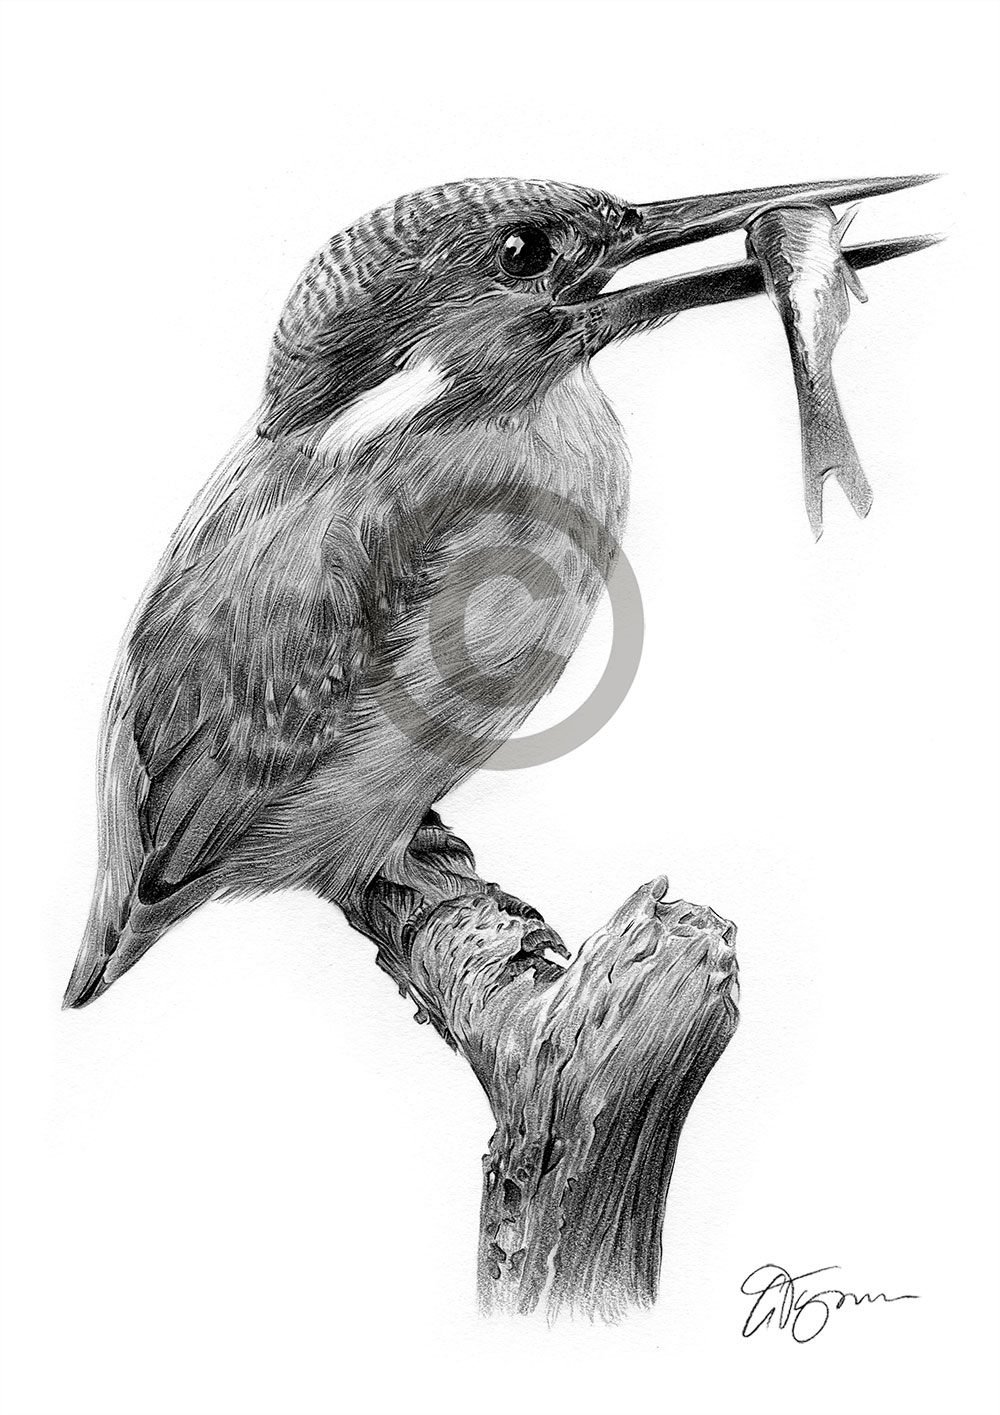 KINGFISHER pencil drawing art print A3 / A4 sizes signed ...